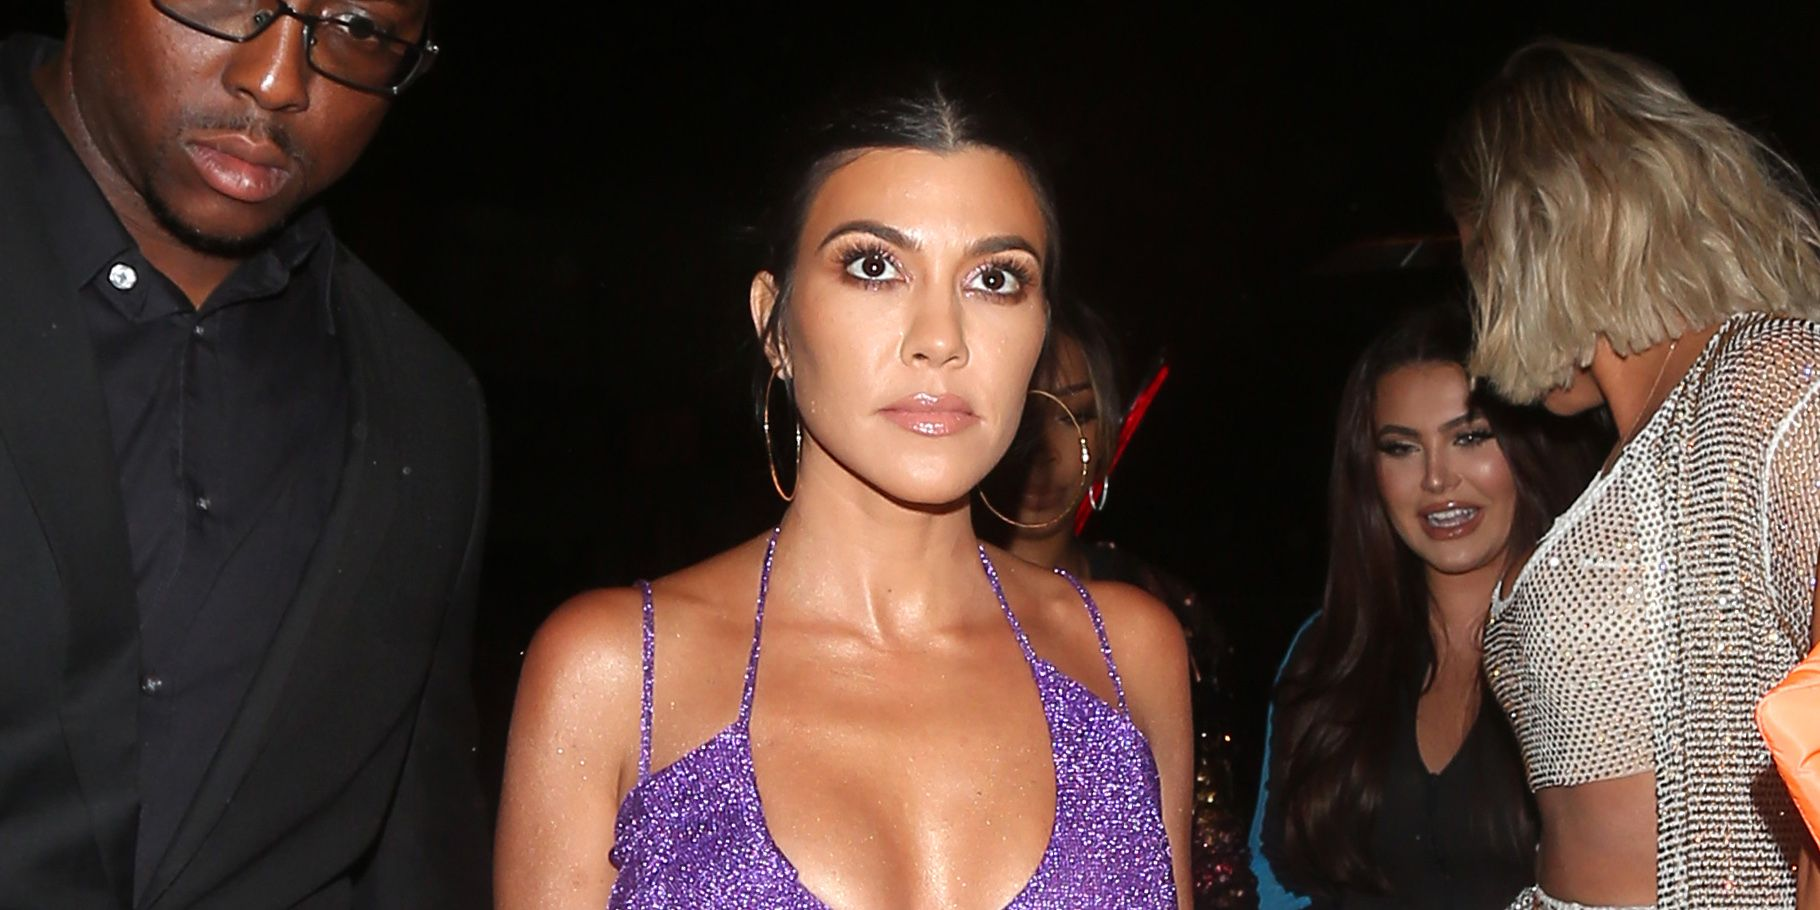 Kendall Jenner, Kourtney Kardashian and Khloe Kardashian all look stunning as they arrive to Craig's eatery to celebrate Kylie Jenner's 21 birthday party